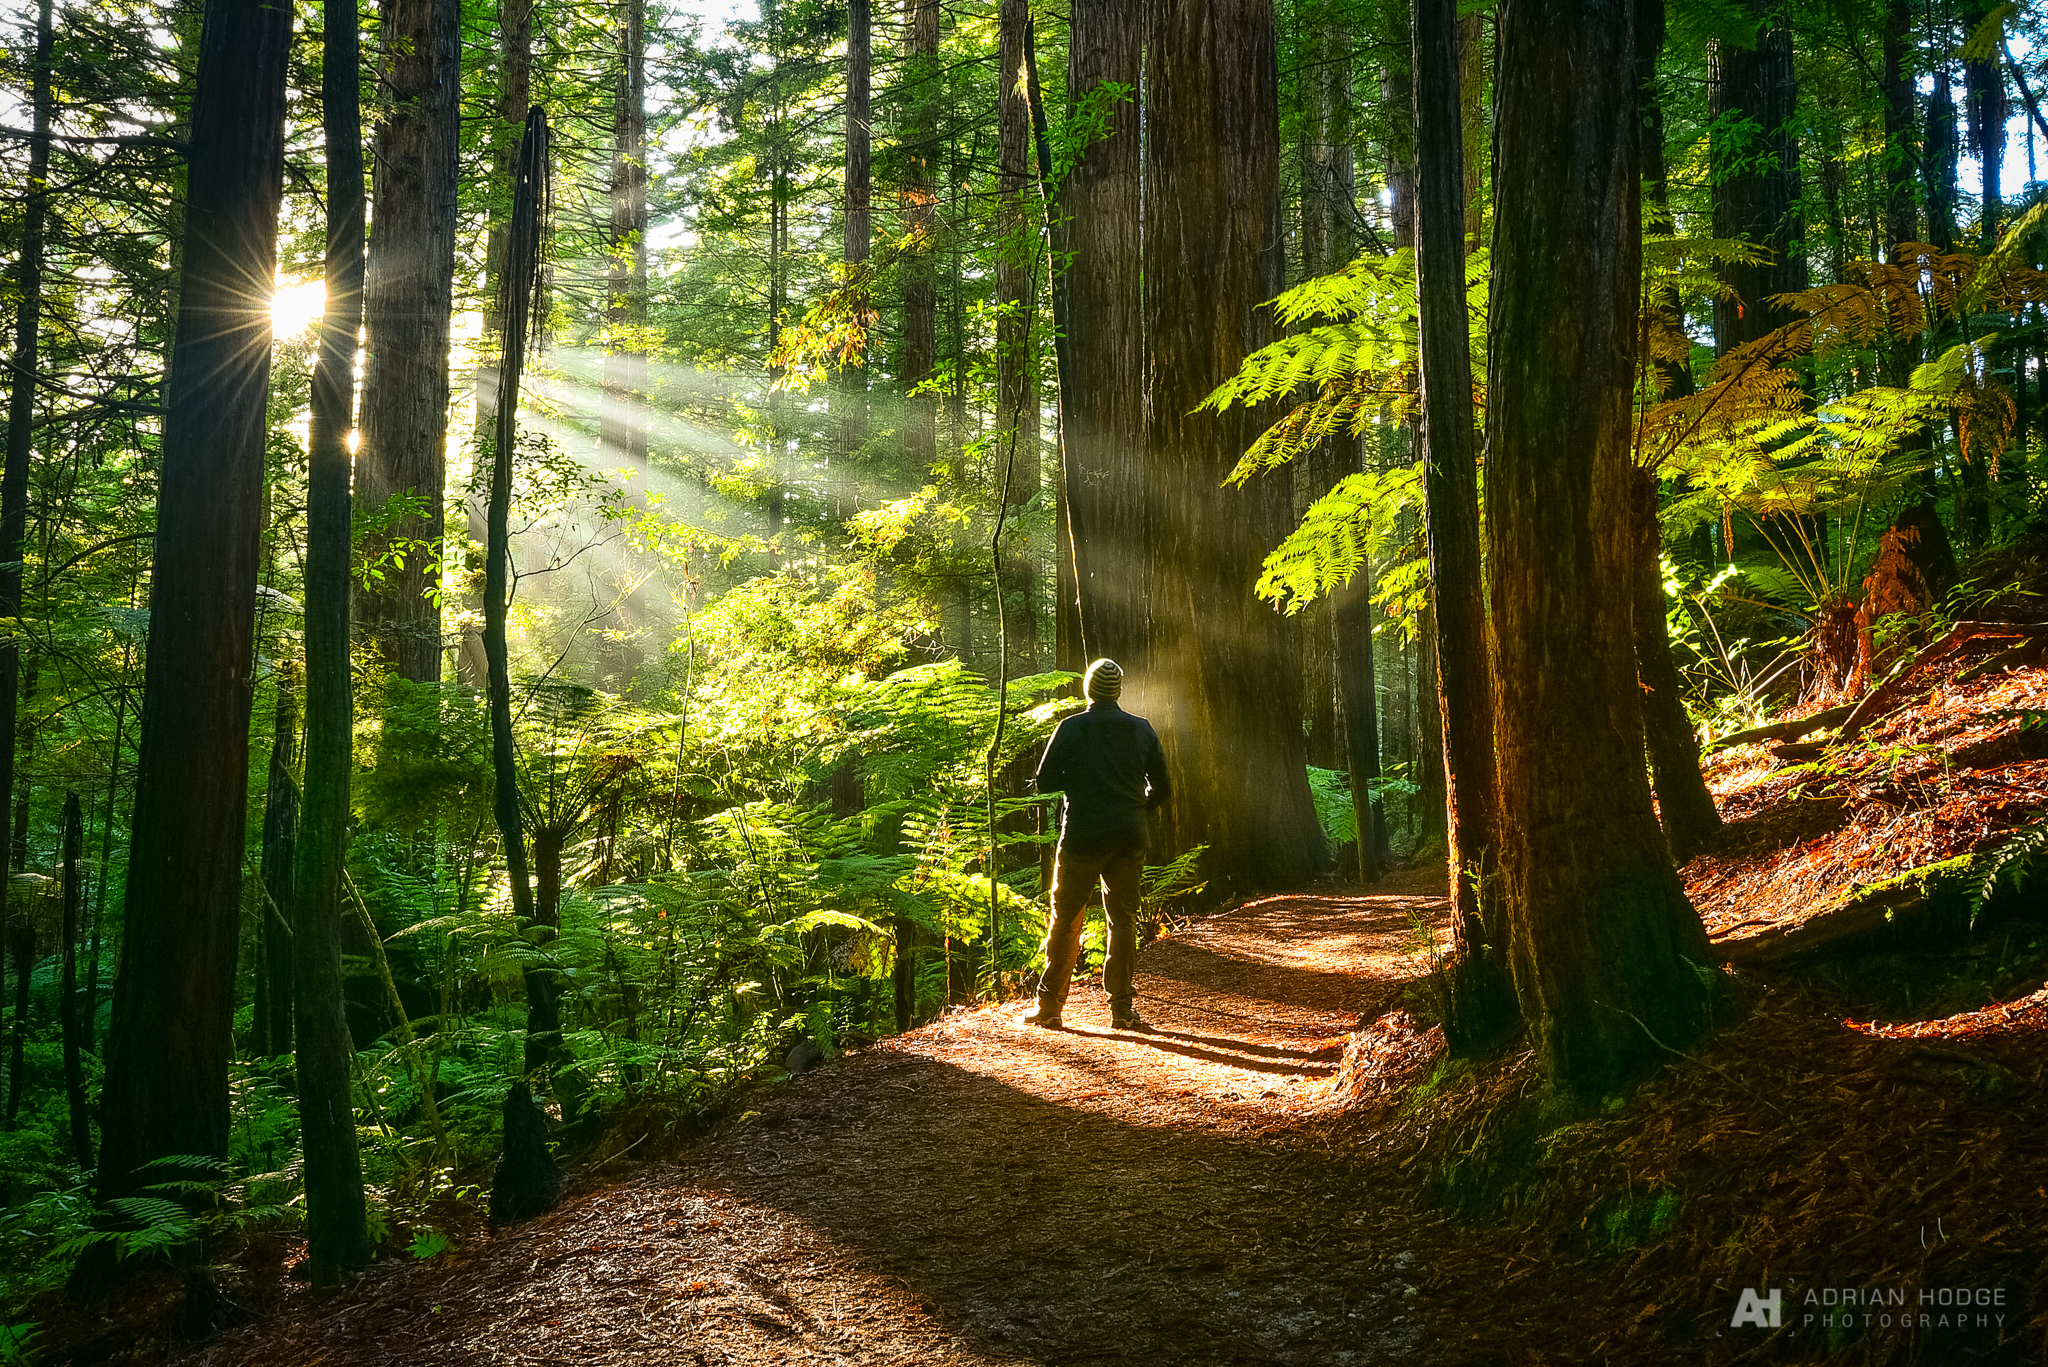 A person standing in the Redwood Forest, with sunlight shining down upon them